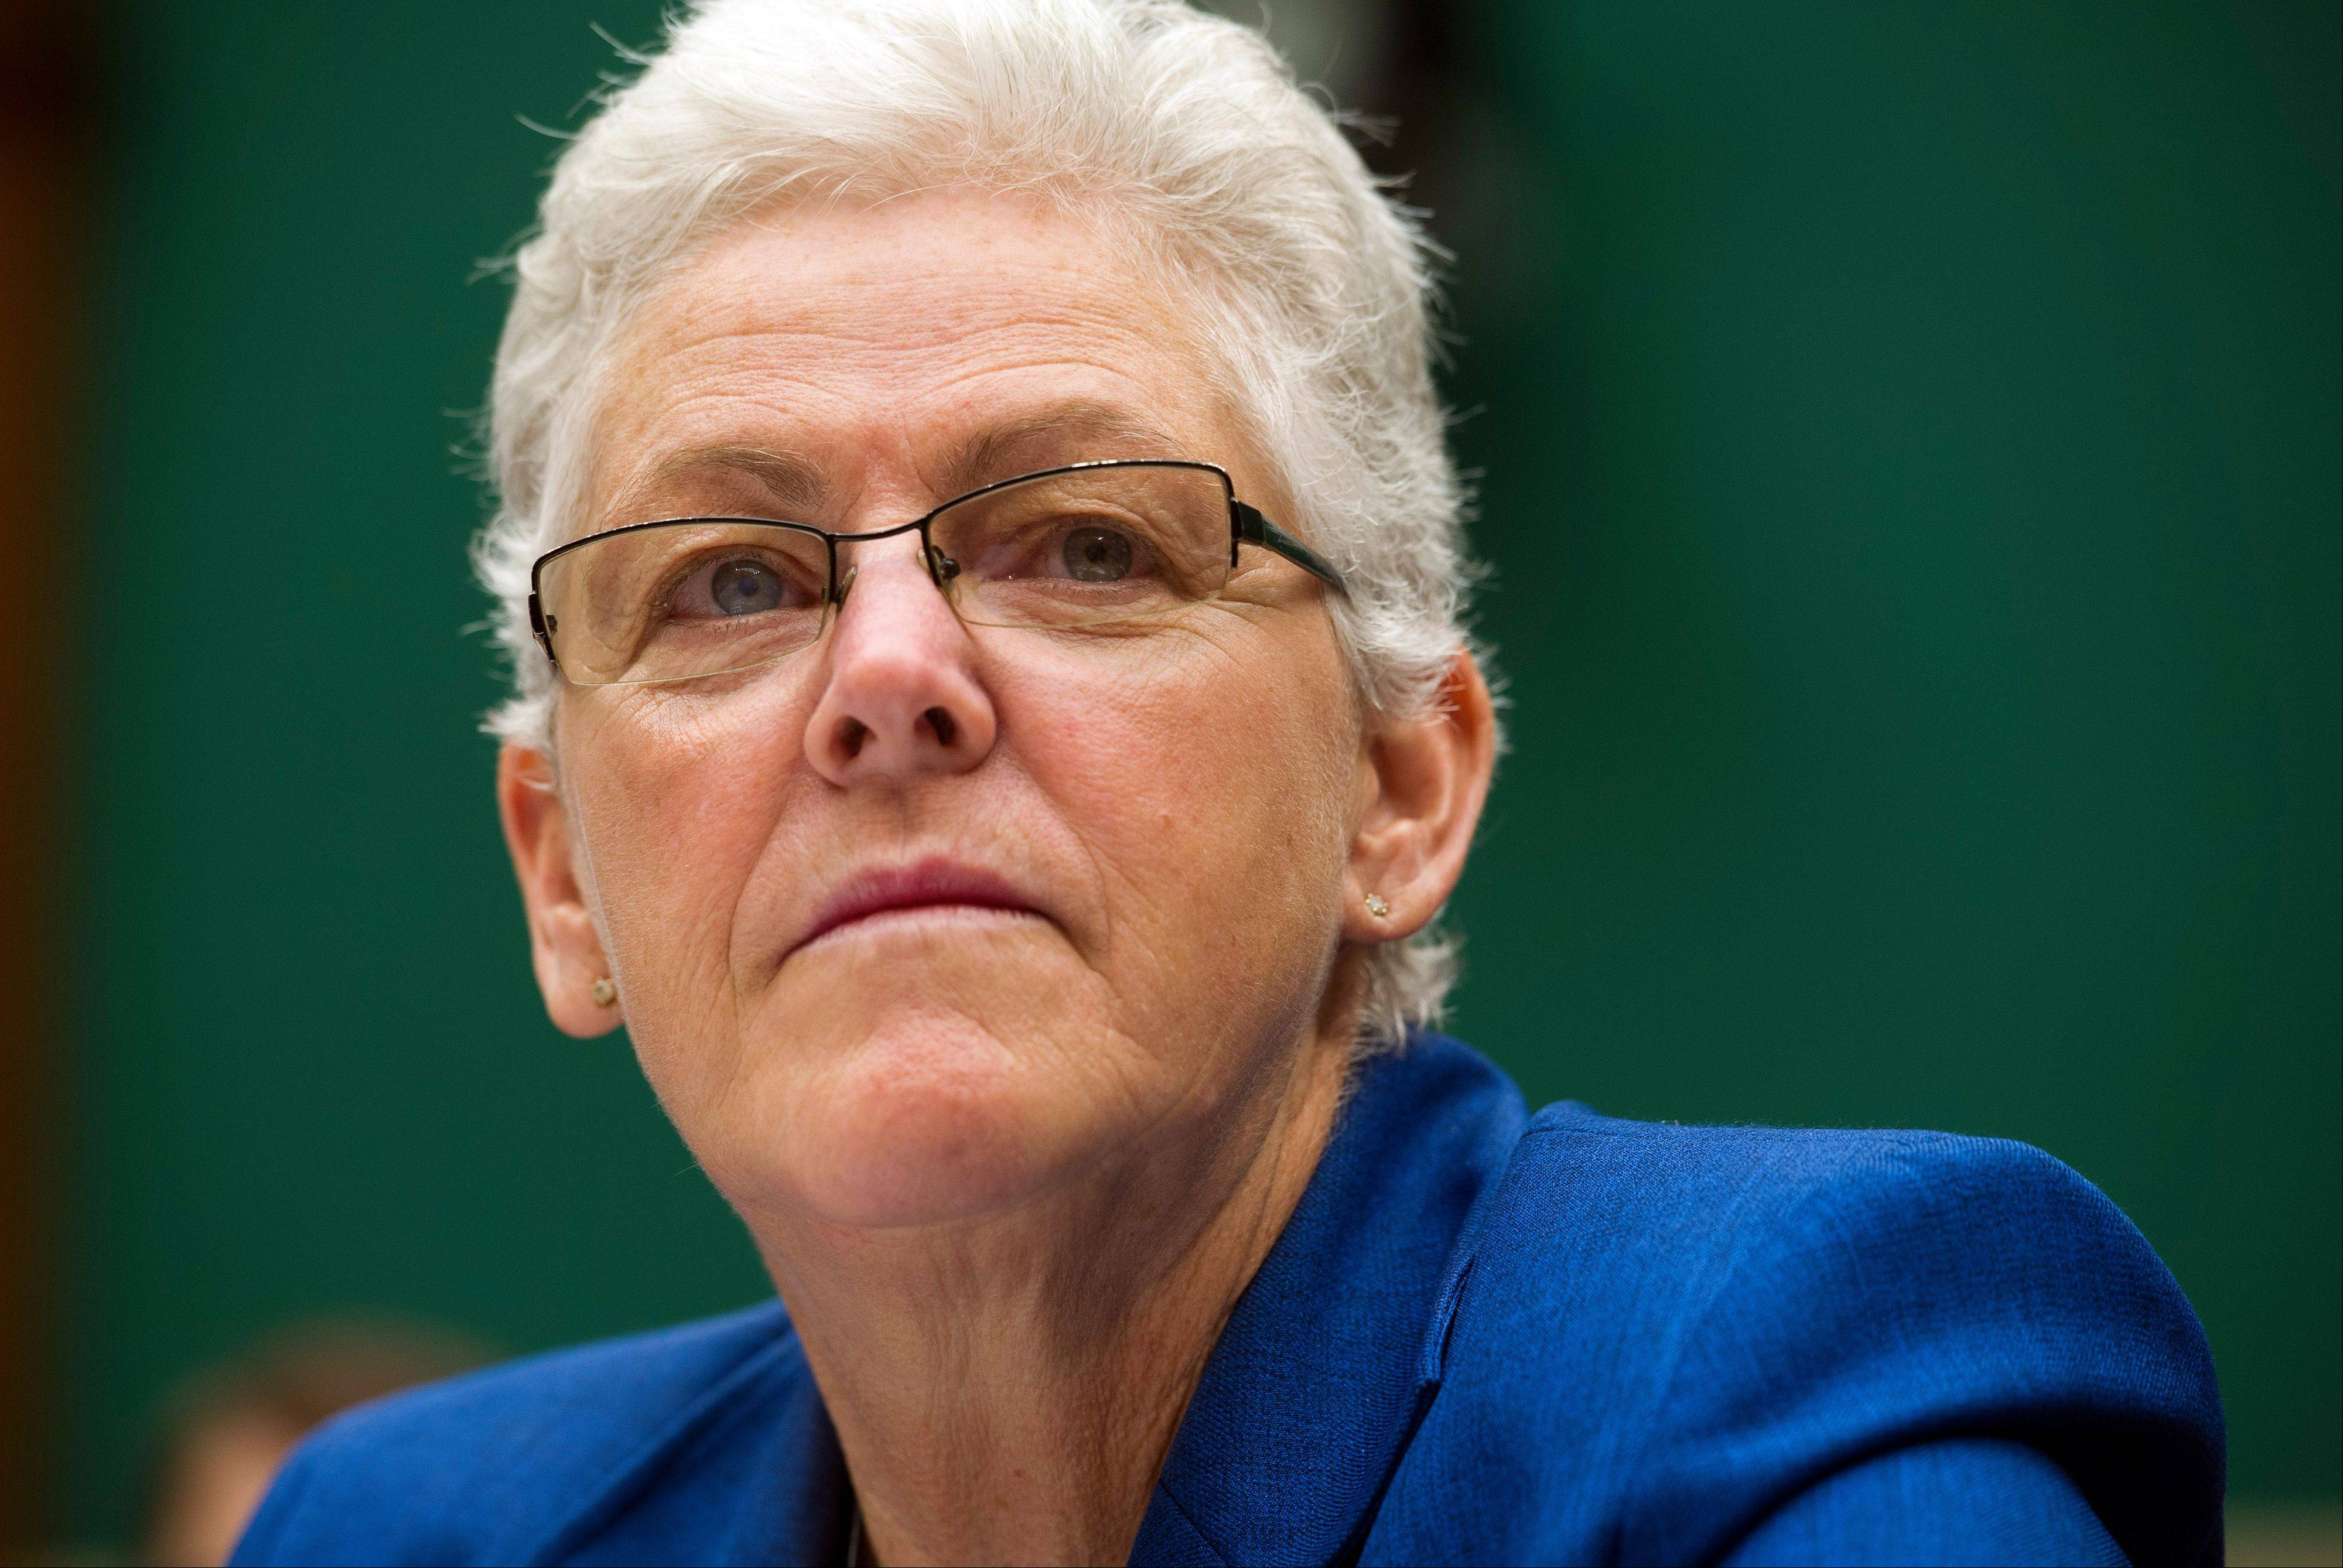 """We know this is not just about melting glaciers,"" said EPA administrator Gina McCarthy. ""Climate change -- caused by carbon pollution -- is one of the most significant public health threats of our time. That's why EPA has been called to action."""